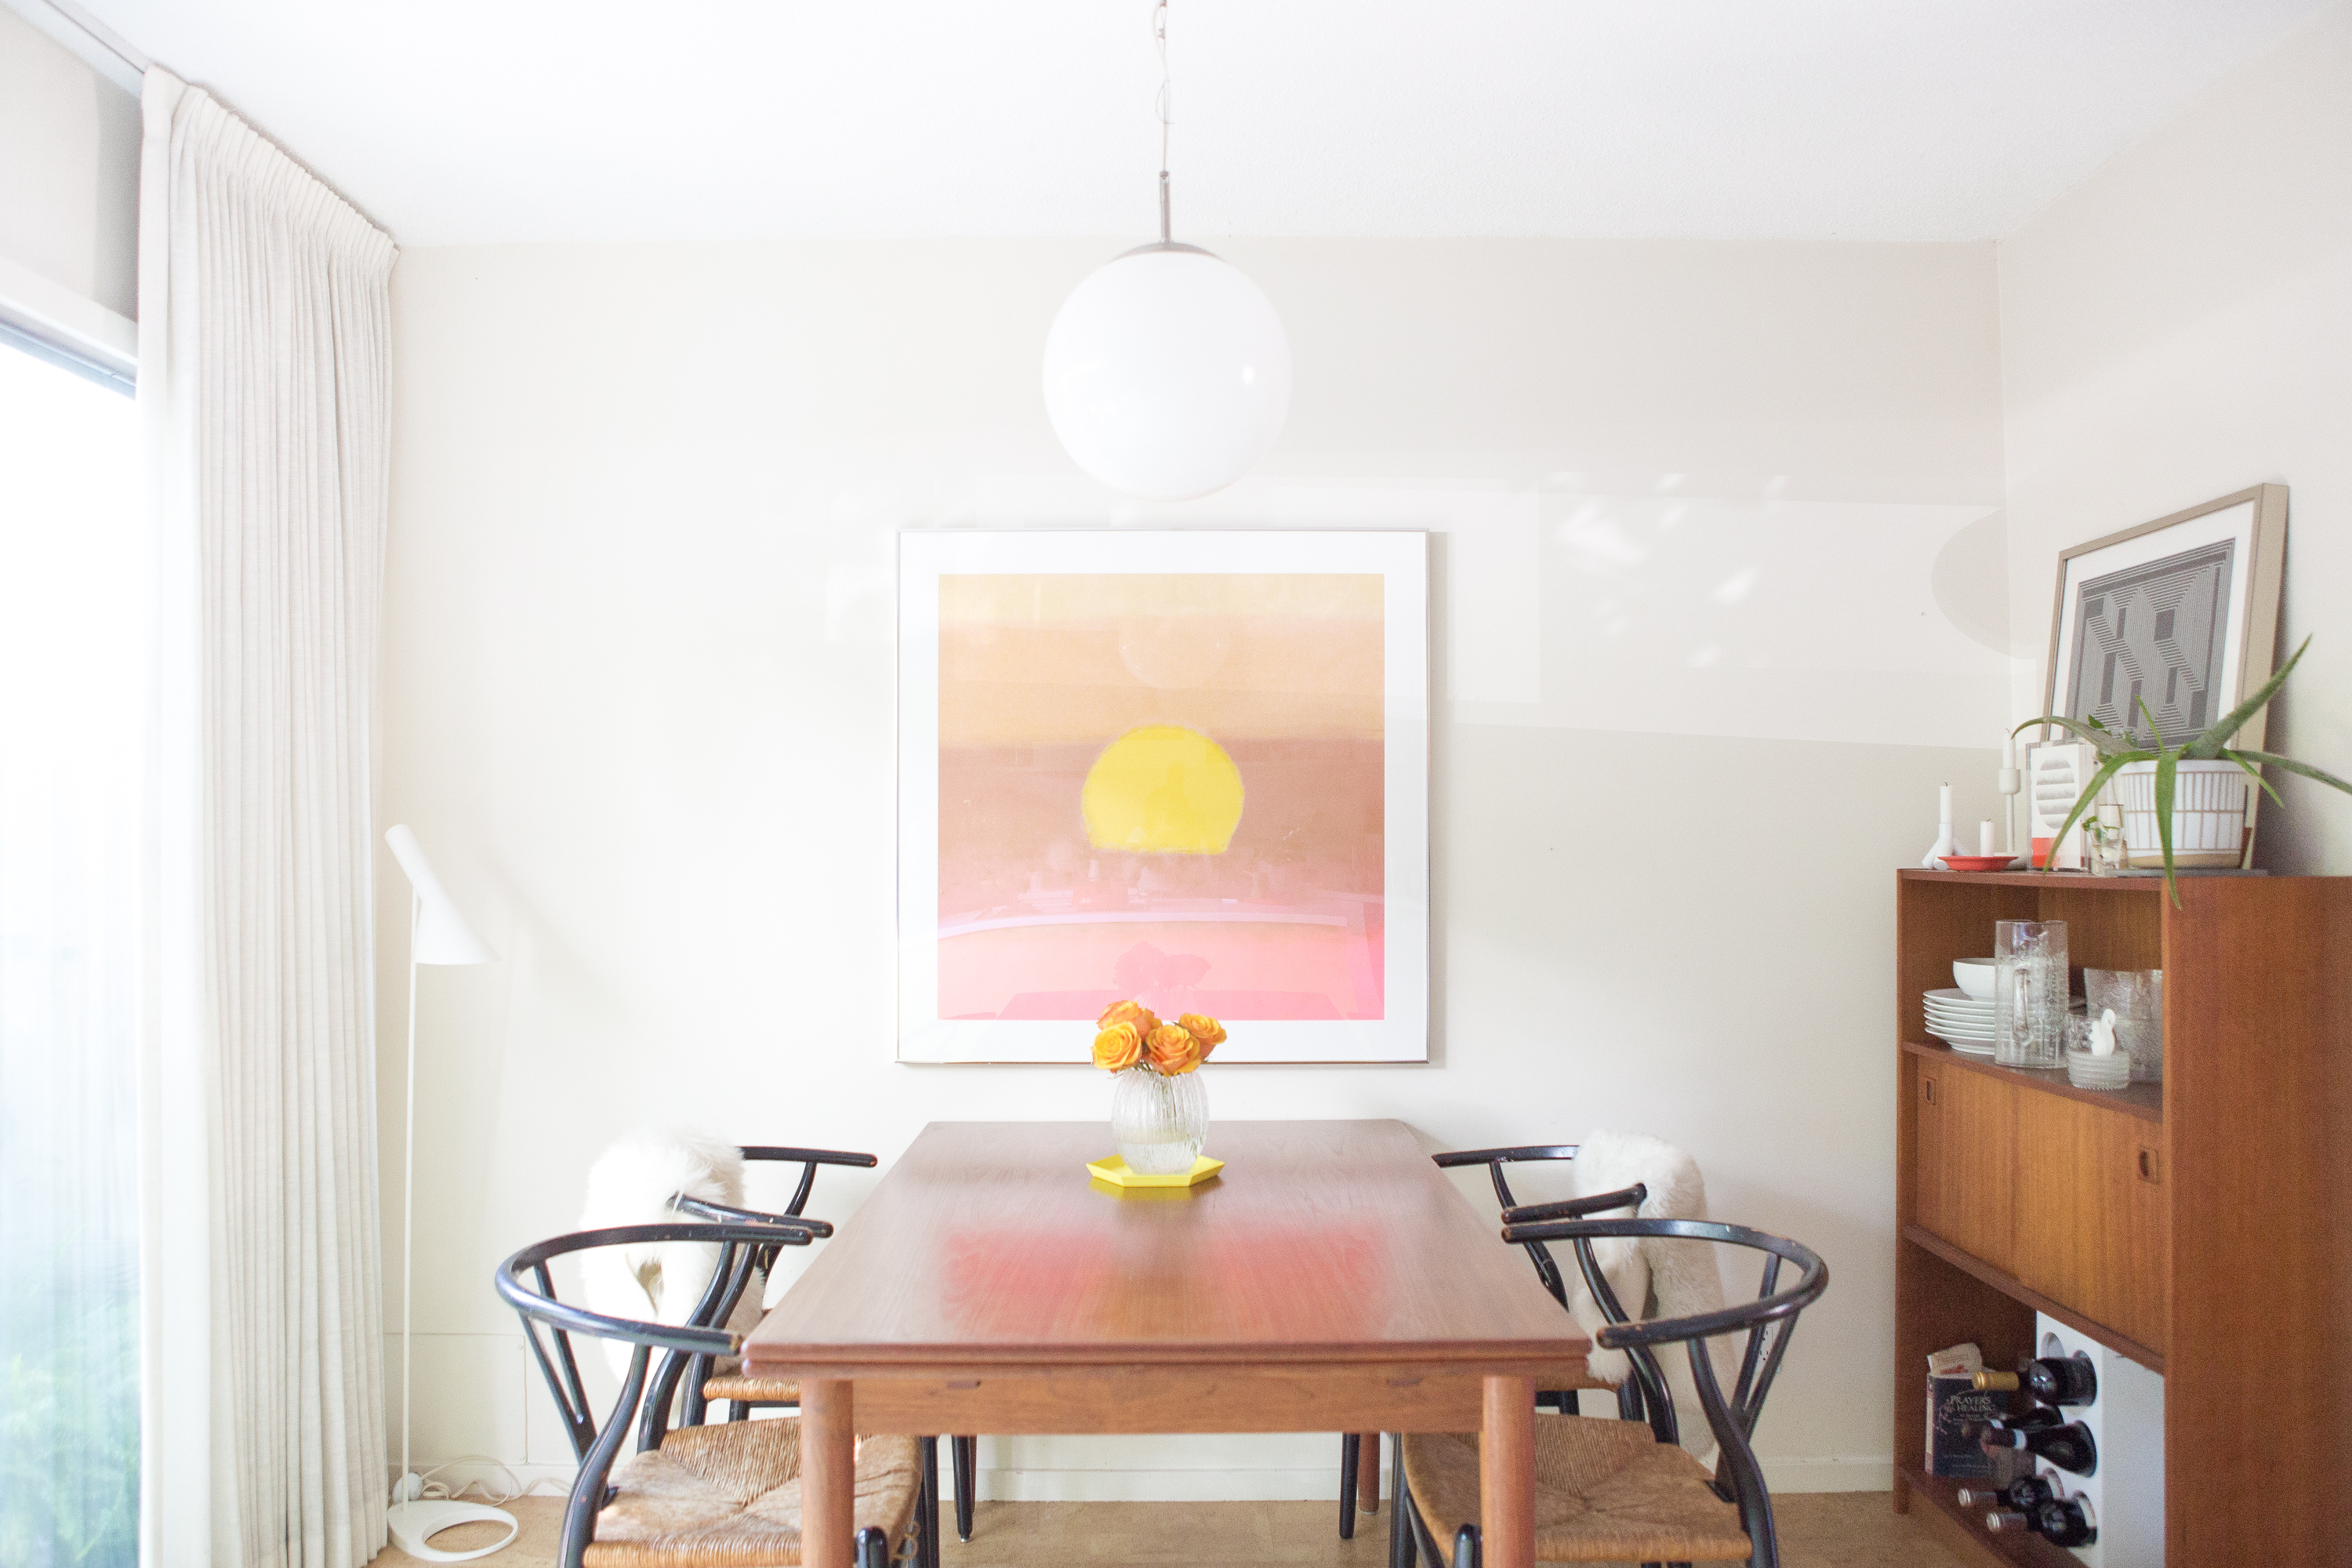 The dining room in the Minneapolis home of stylist and designer David Anger